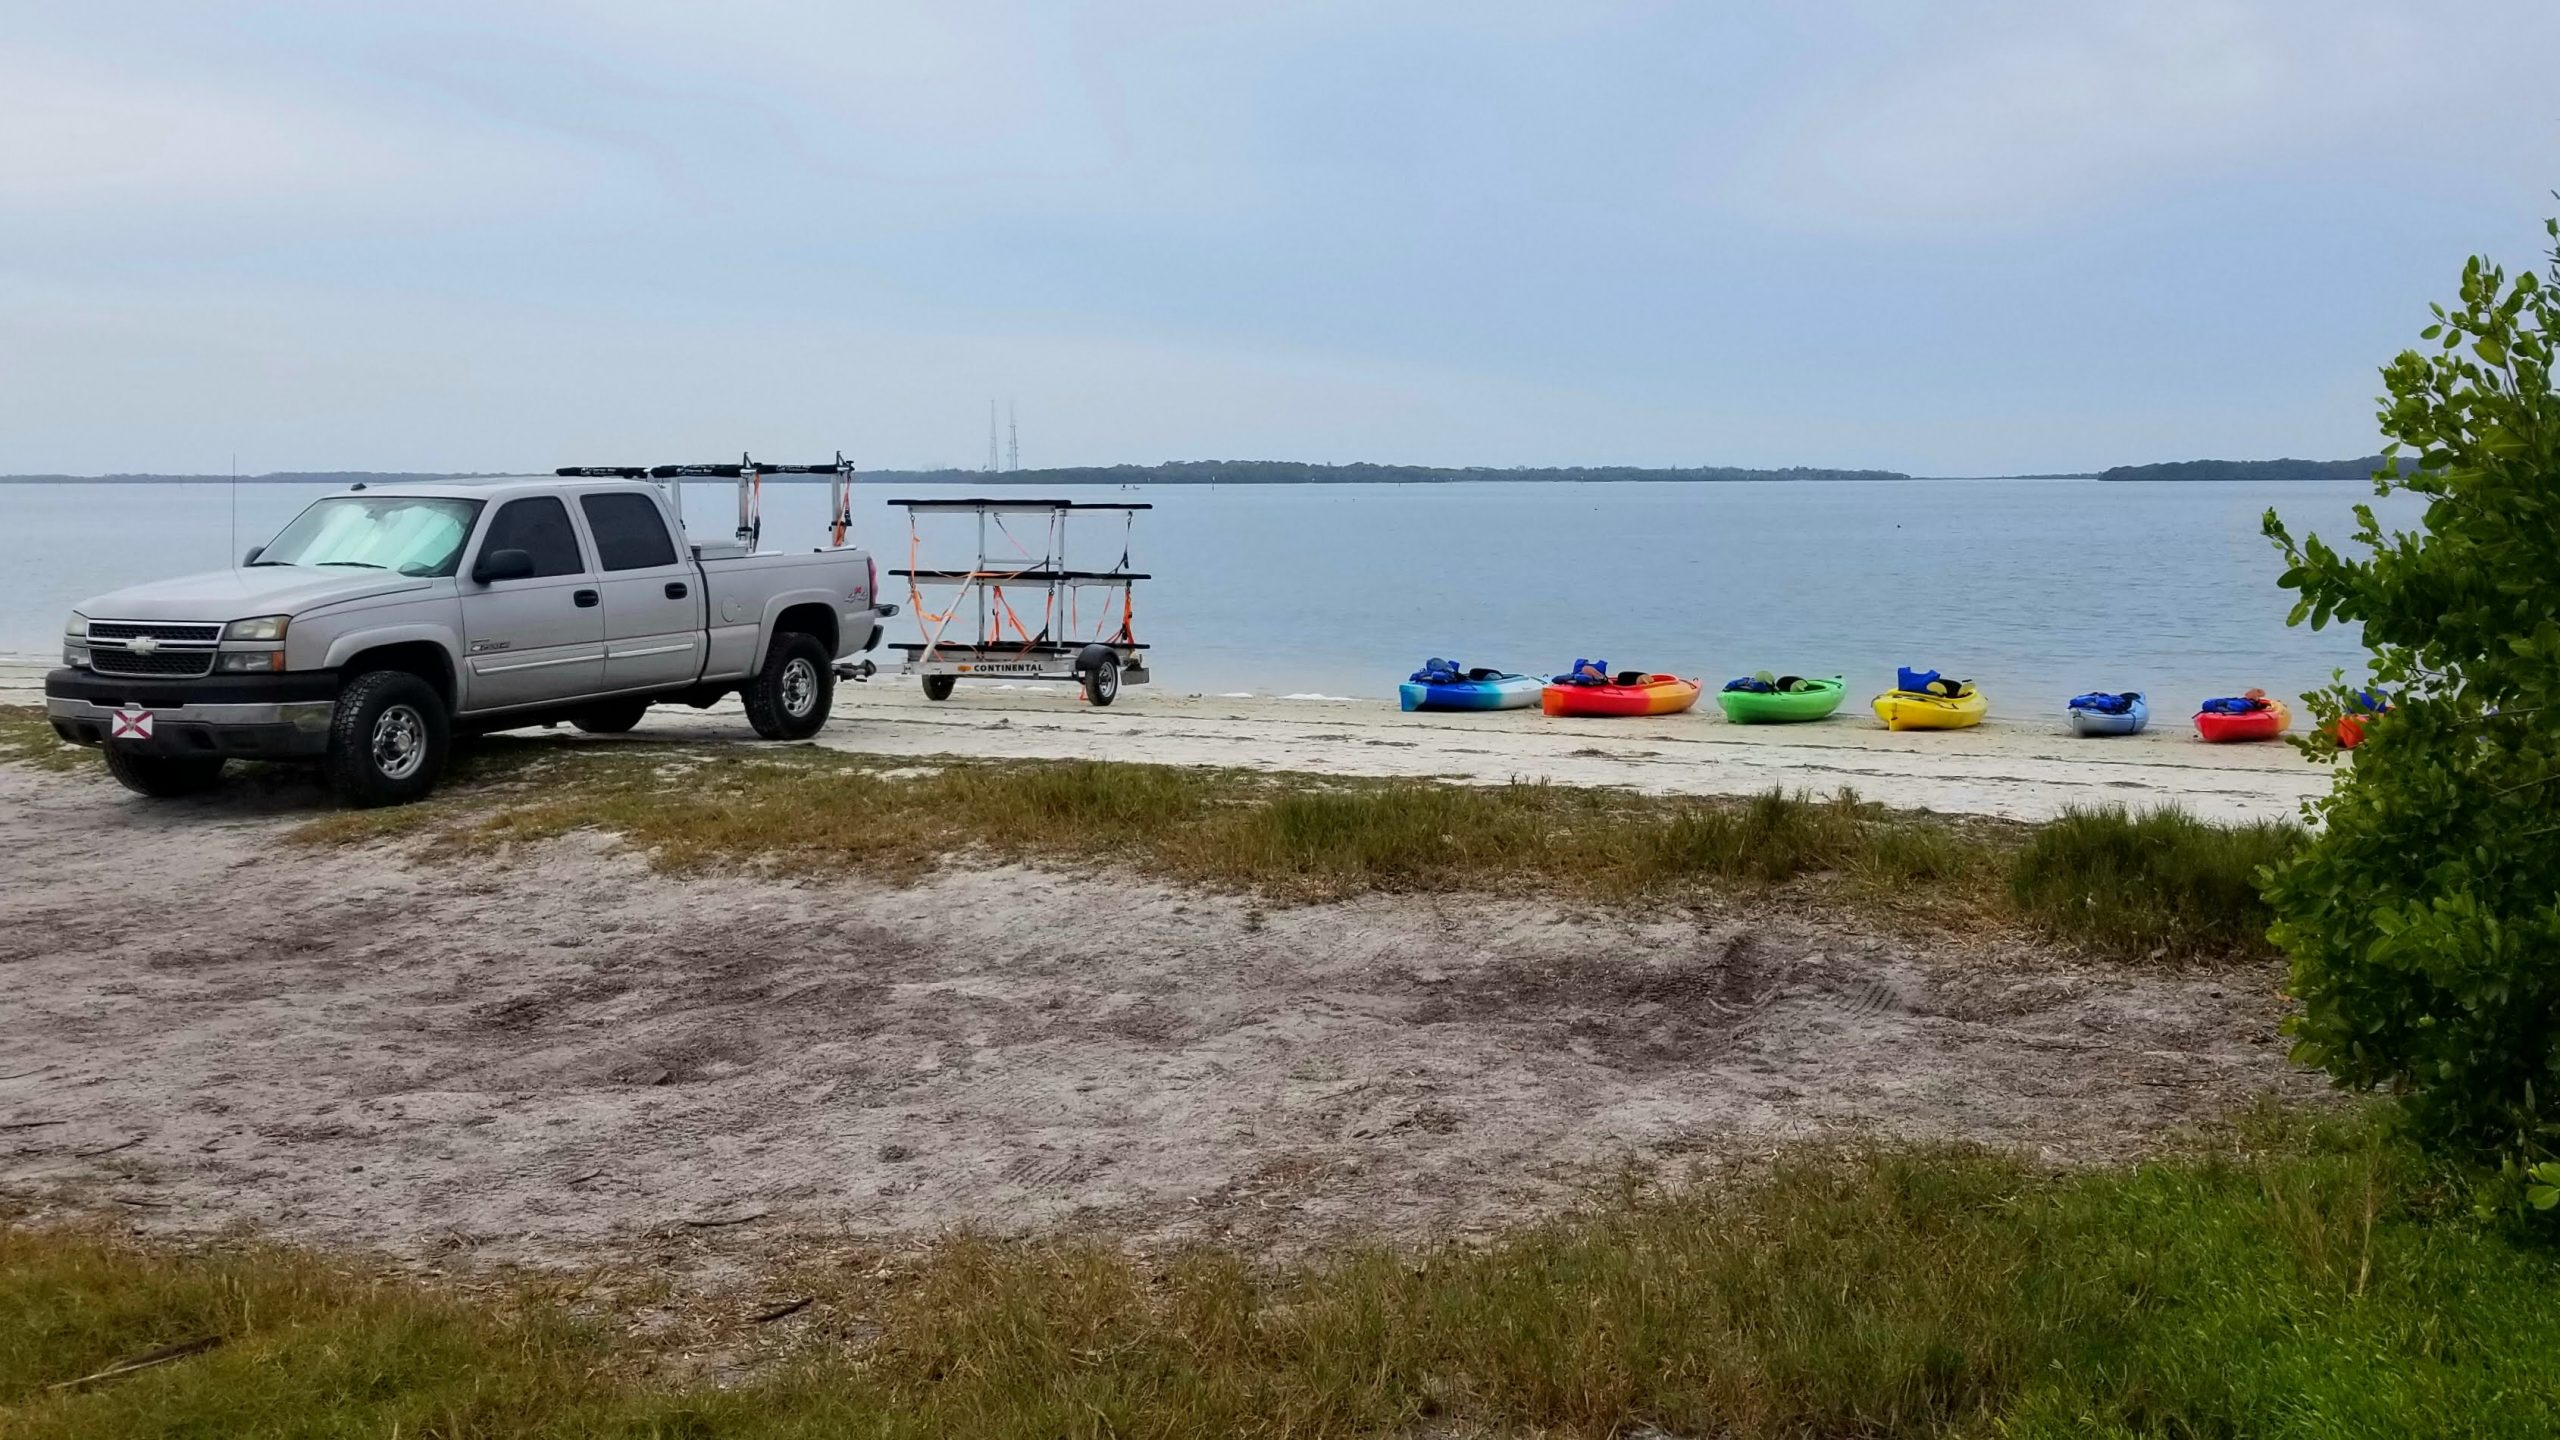 Set up at the launch site, ready for kayaking.